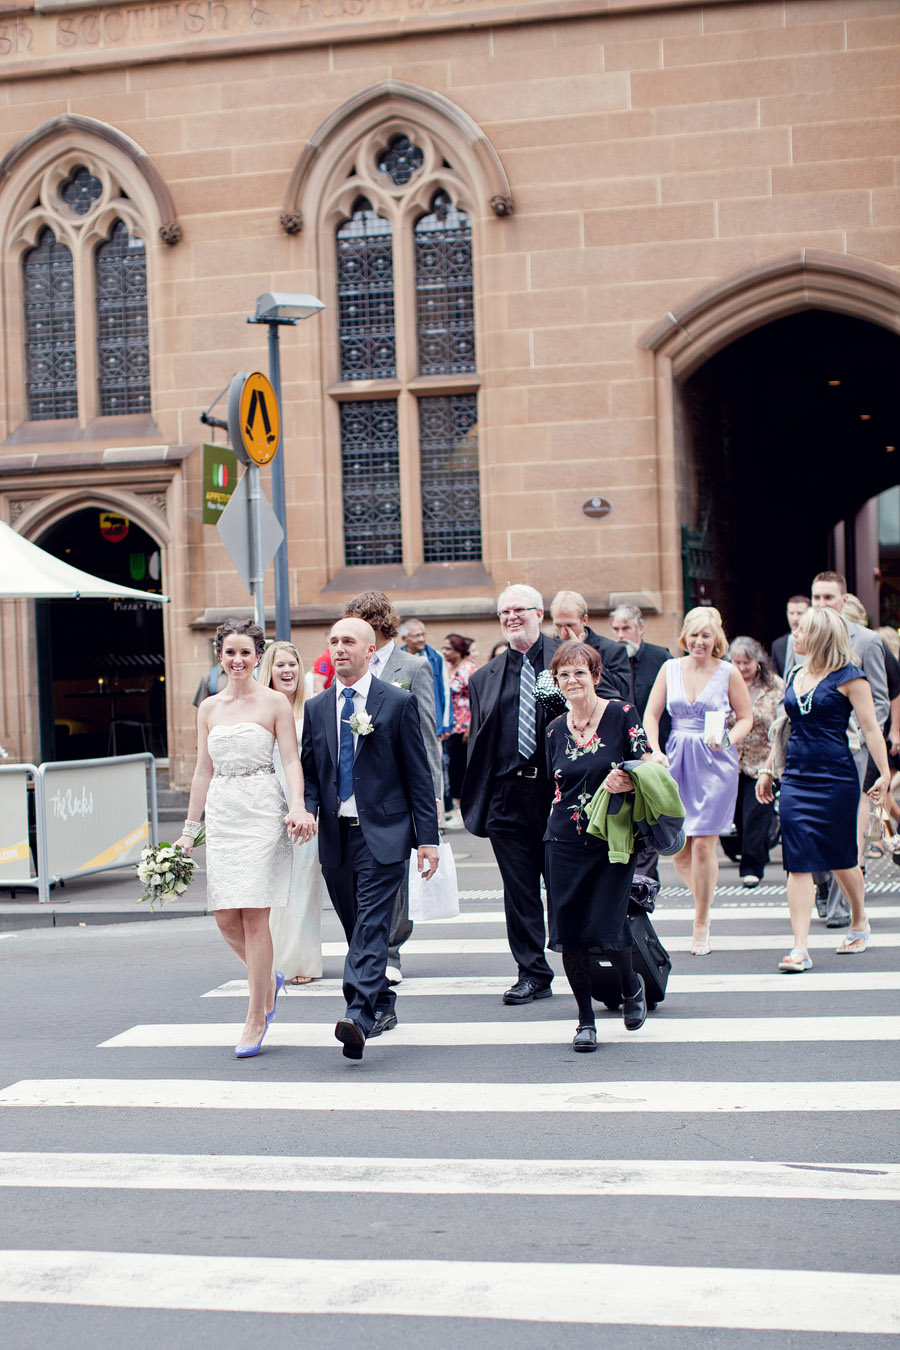 Sydney Wedding Photographer: Wedding party walking through the streets